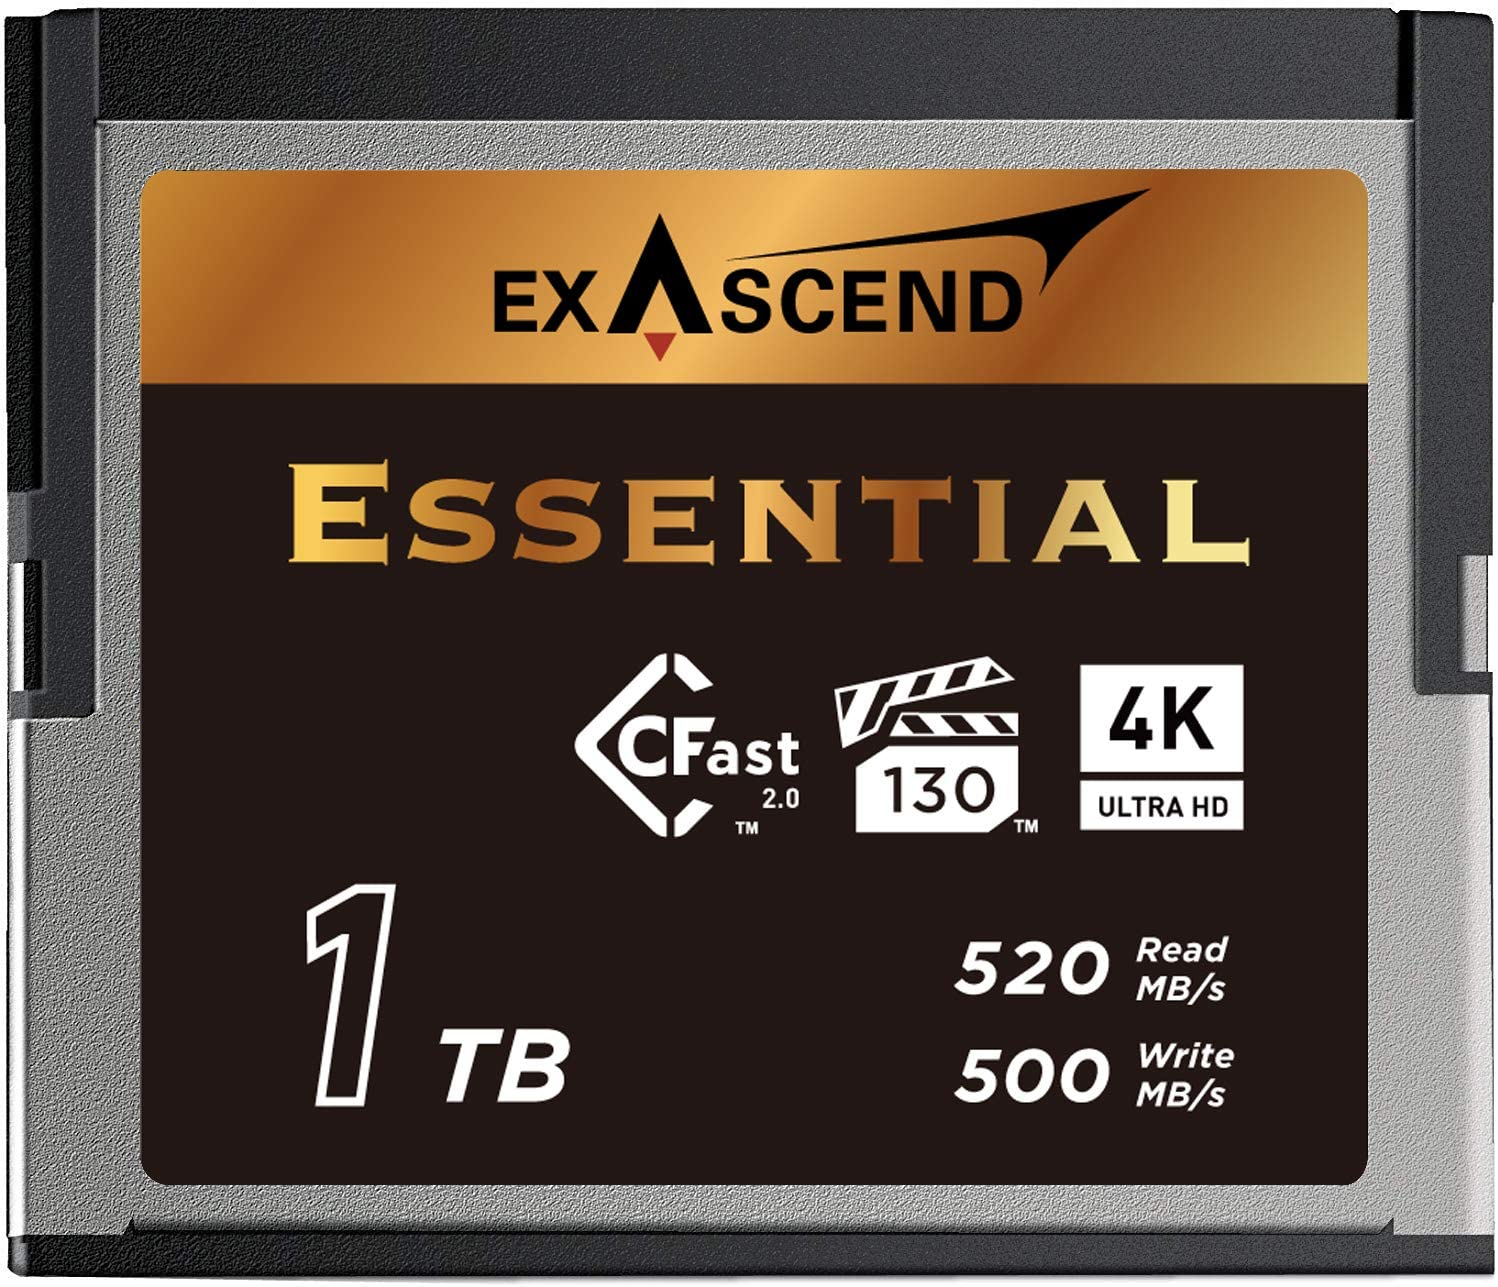 Exascend Essential 1TB CFast 2.0 Memory Card, up to 520MB/s, Approved for Blackmagic URSA Mini Pro 12K, Canon XC15/C300MKII, and Others